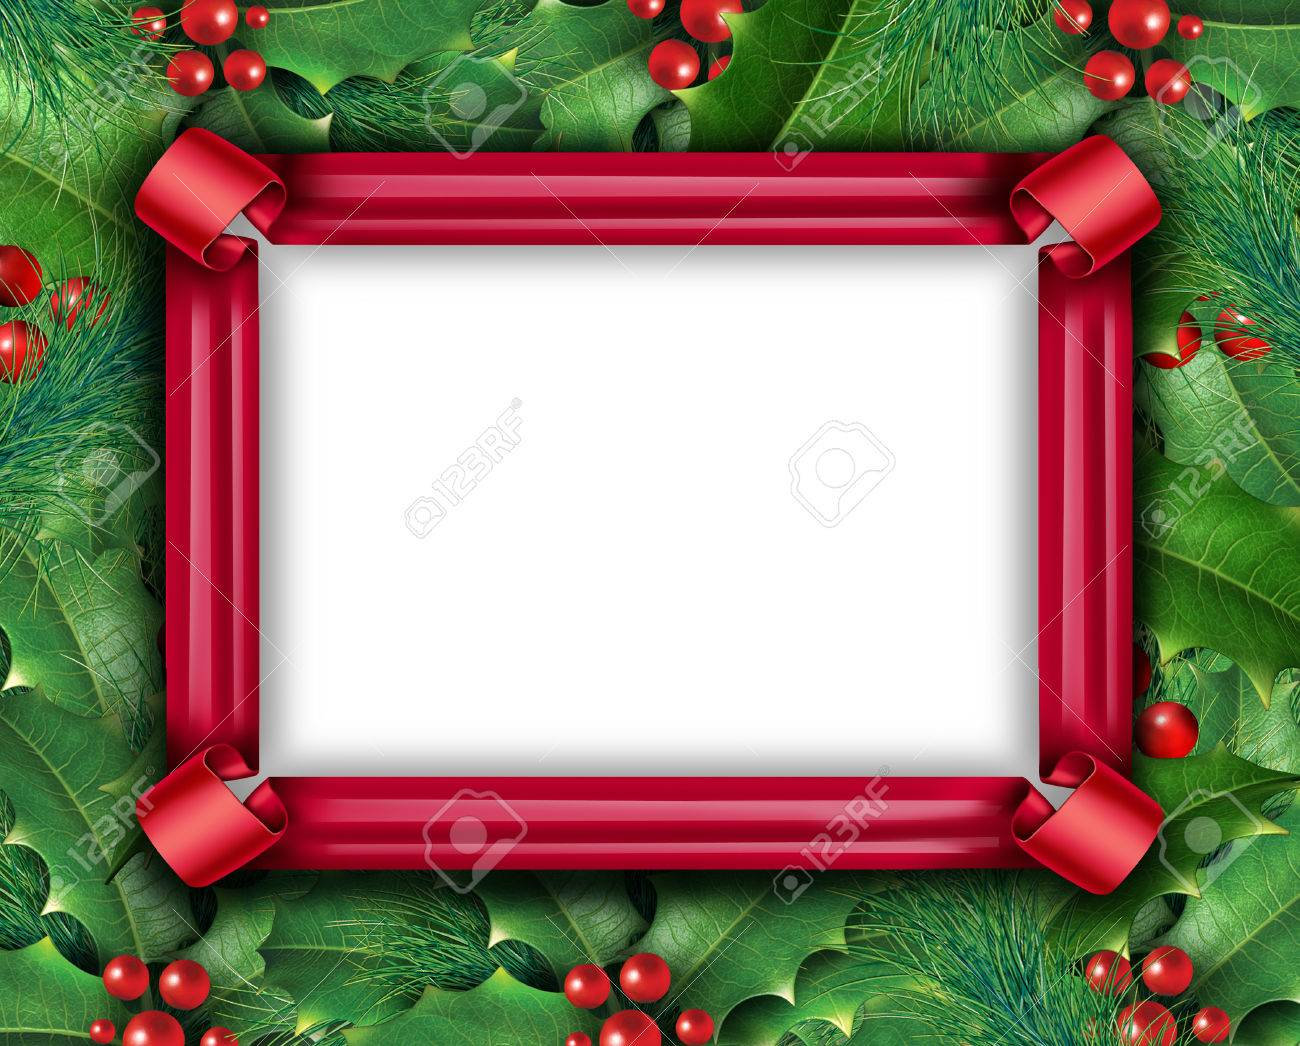 Winter holiday frame with a red ribbon and christmas holly with winter holiday frame with a red ribbon and christmas holly with with red berries and green buycottarizona Image collections